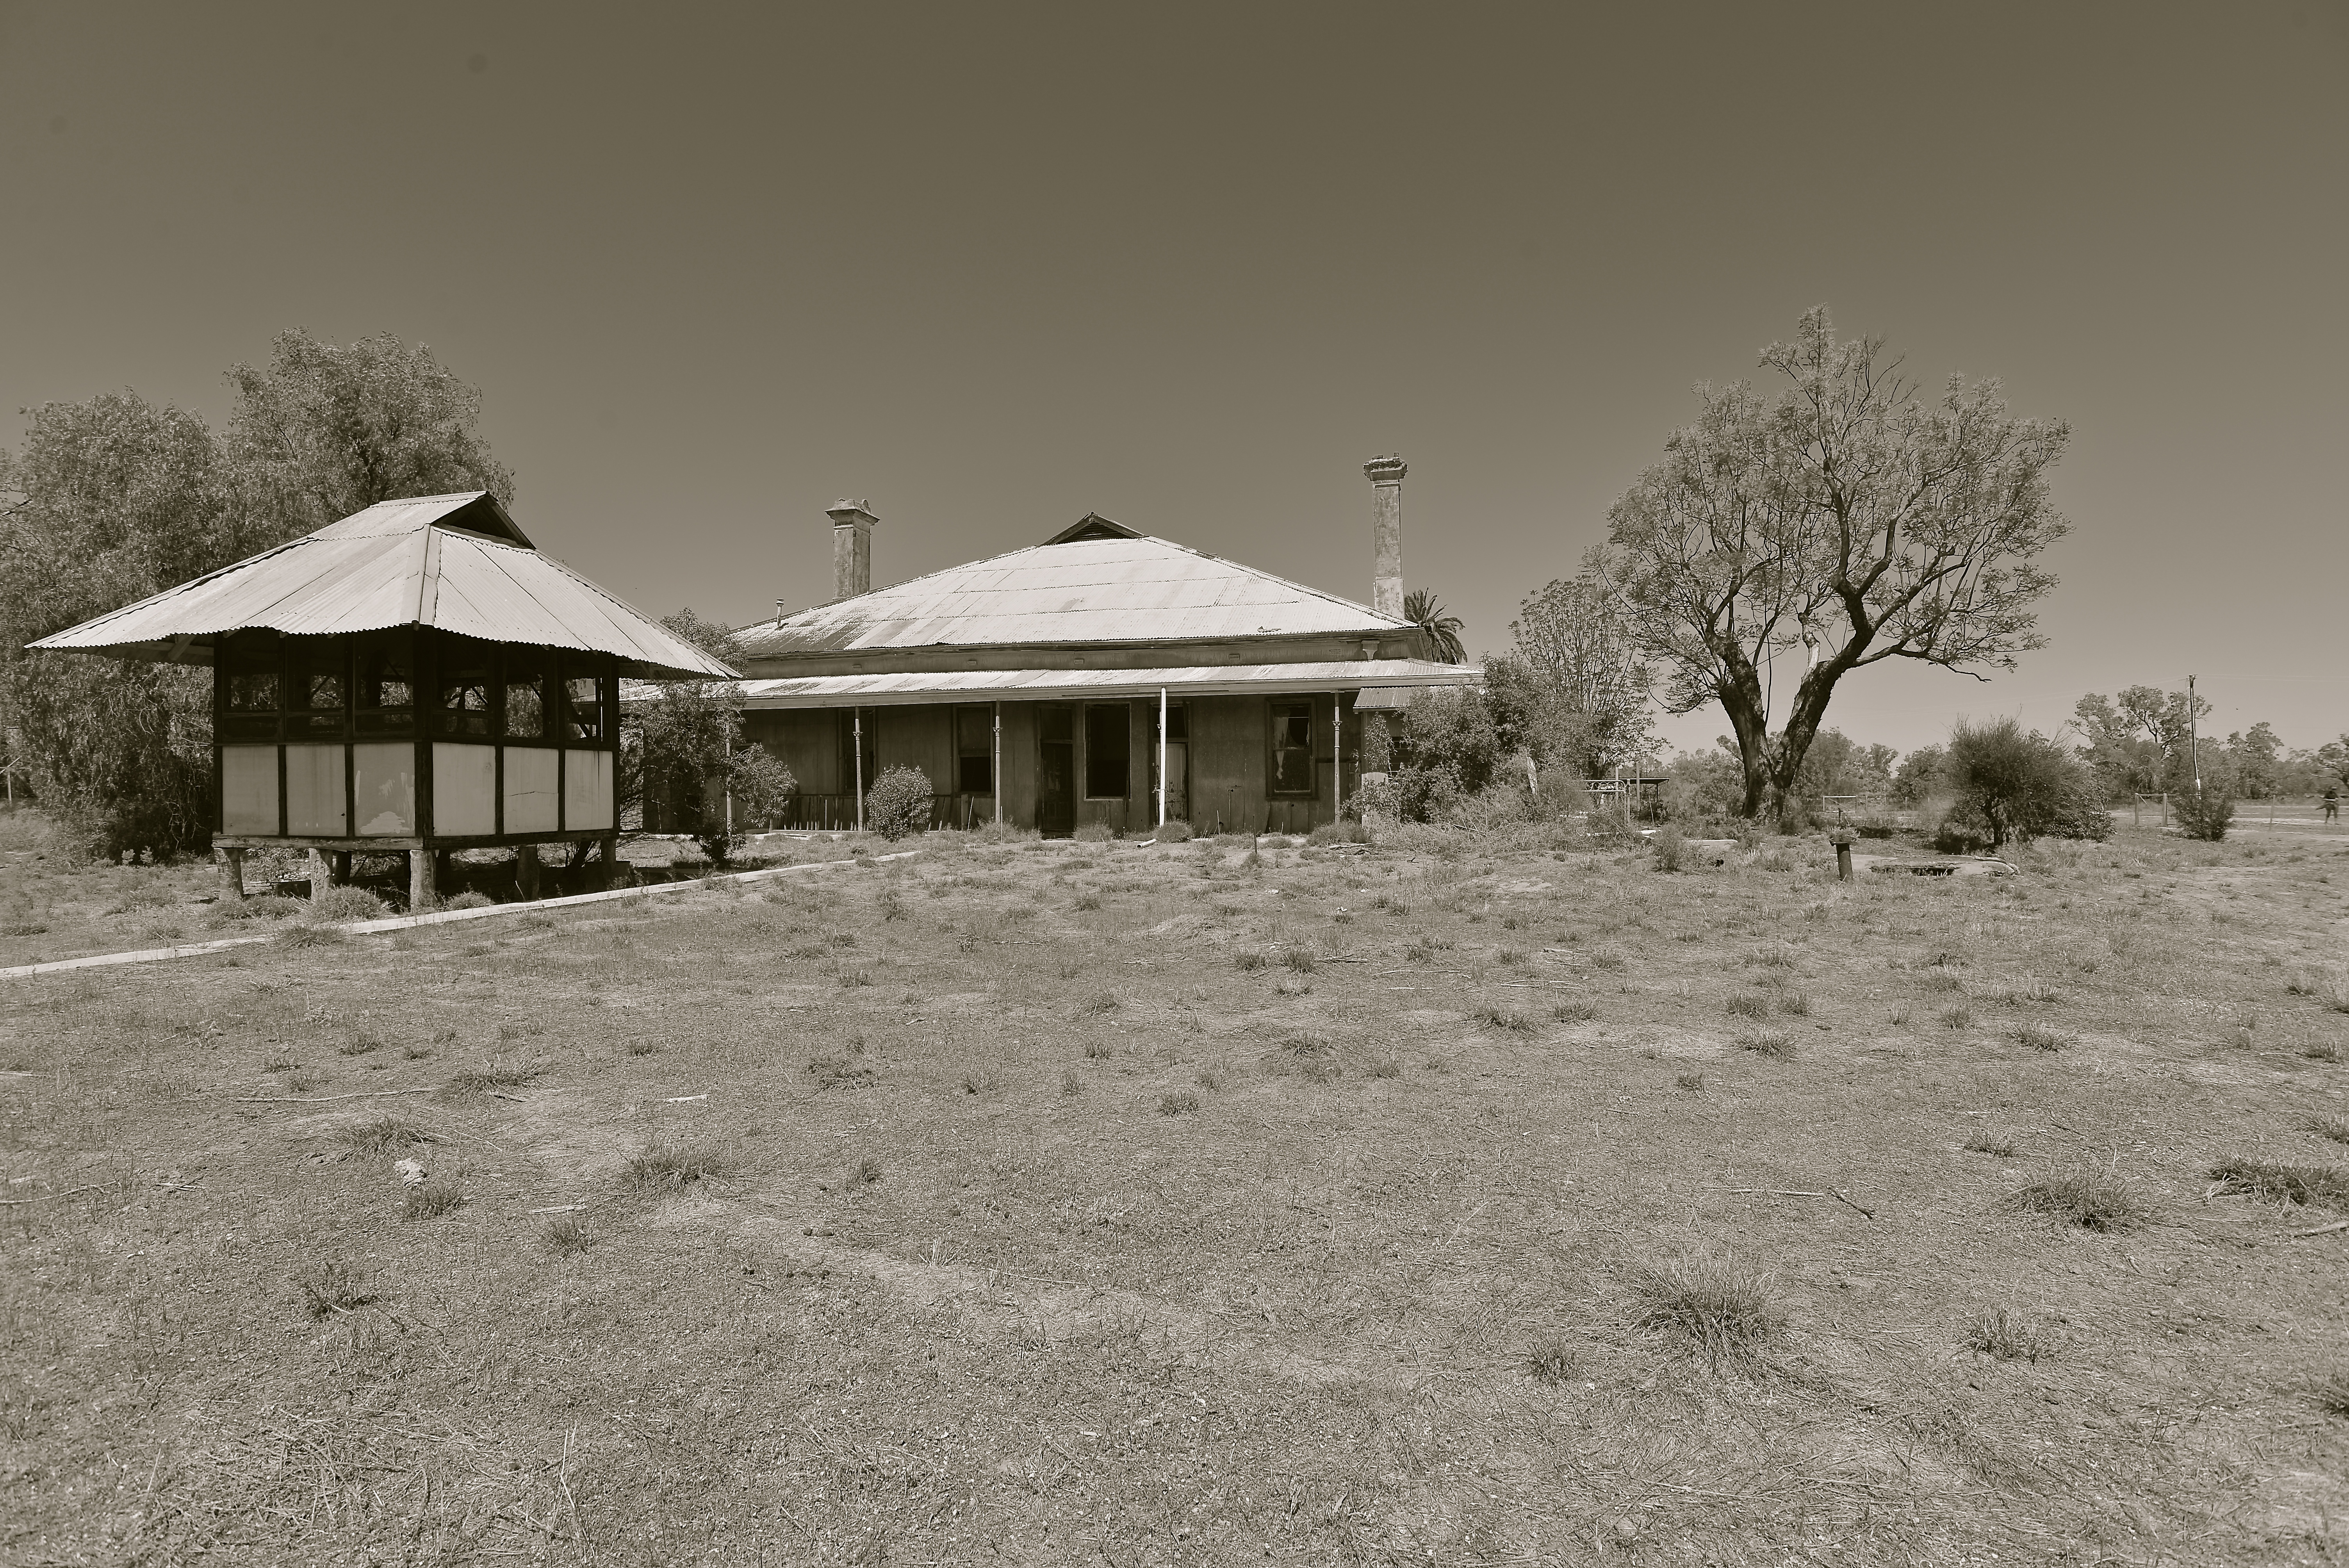 Toorale Homestead In The Australian Outback XPLORE